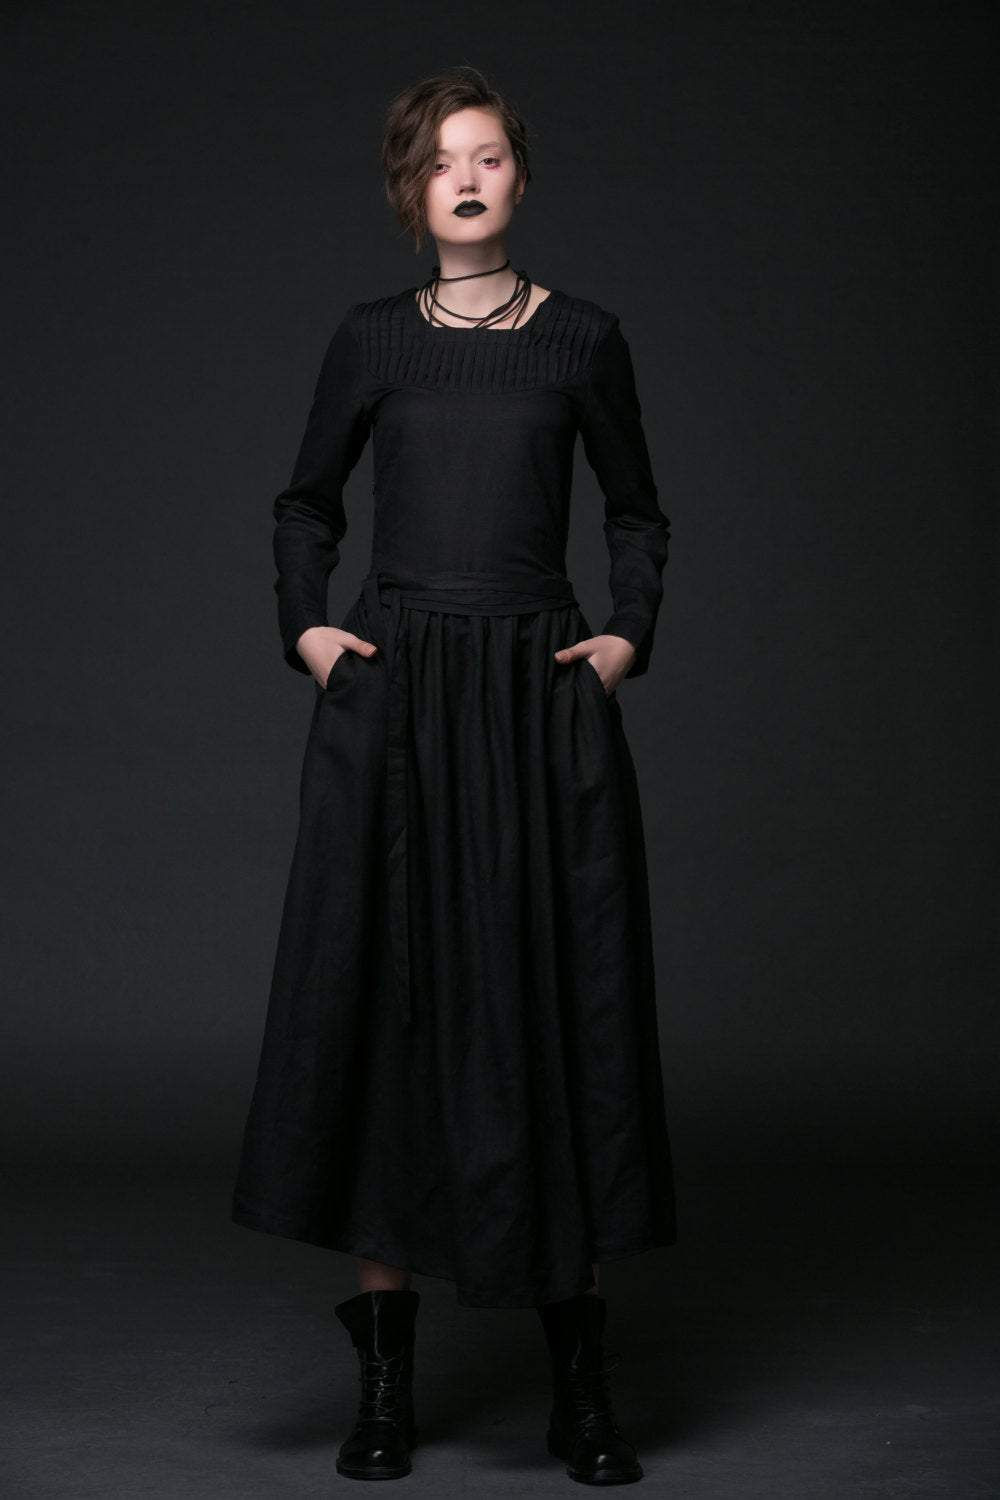 Black Linen Dress - Maxi Goth Style Long Sleeved Fit & Flare with Tie Belt Women's Handmade Clothing C513